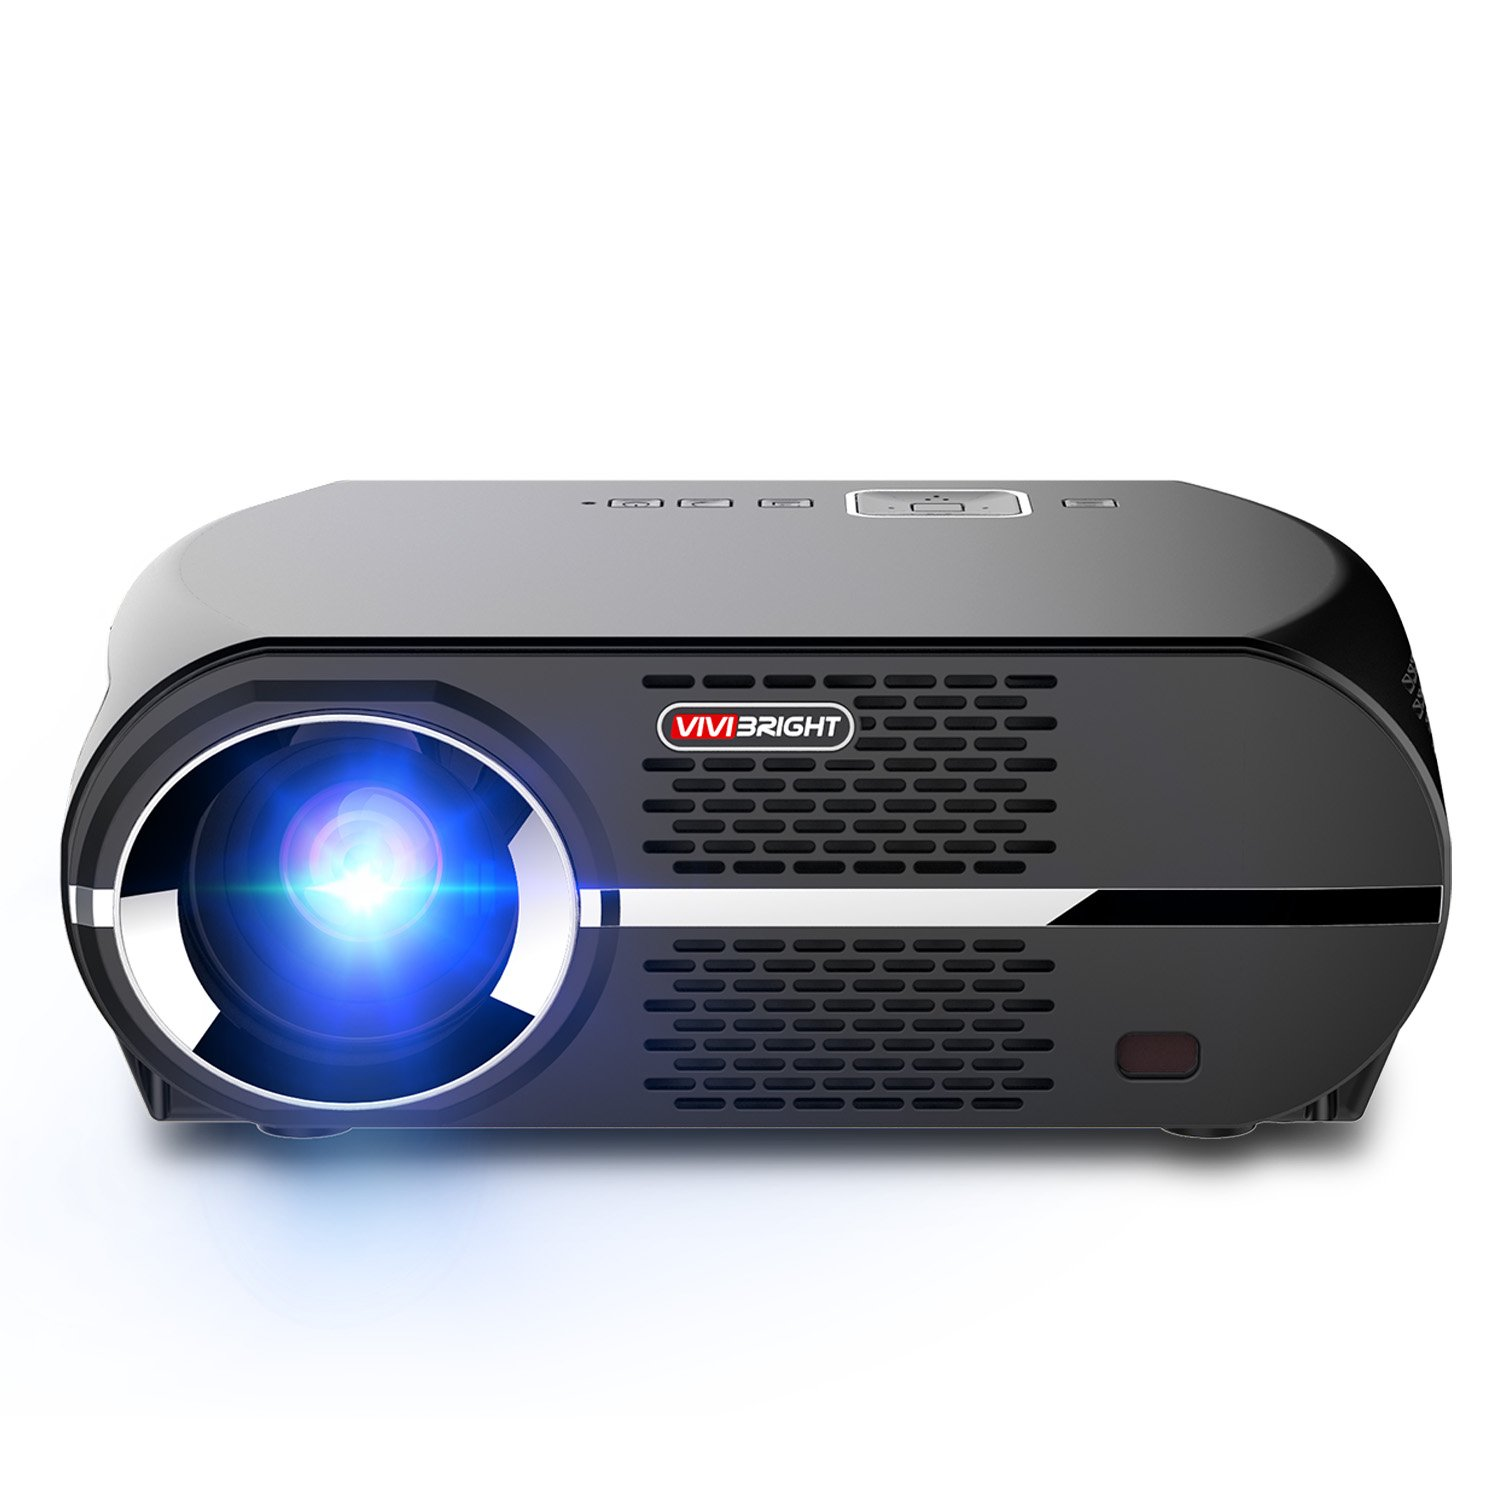 VIVIBRIGHT GP100 Video Projector,LCD 1080P Full-HD Level Image Quality,3500 Lumens LED Luminous Efficiency, WXGA Resolution, In Your Living Room Bedroom Meet All Entertainment,Games,Video Viewing